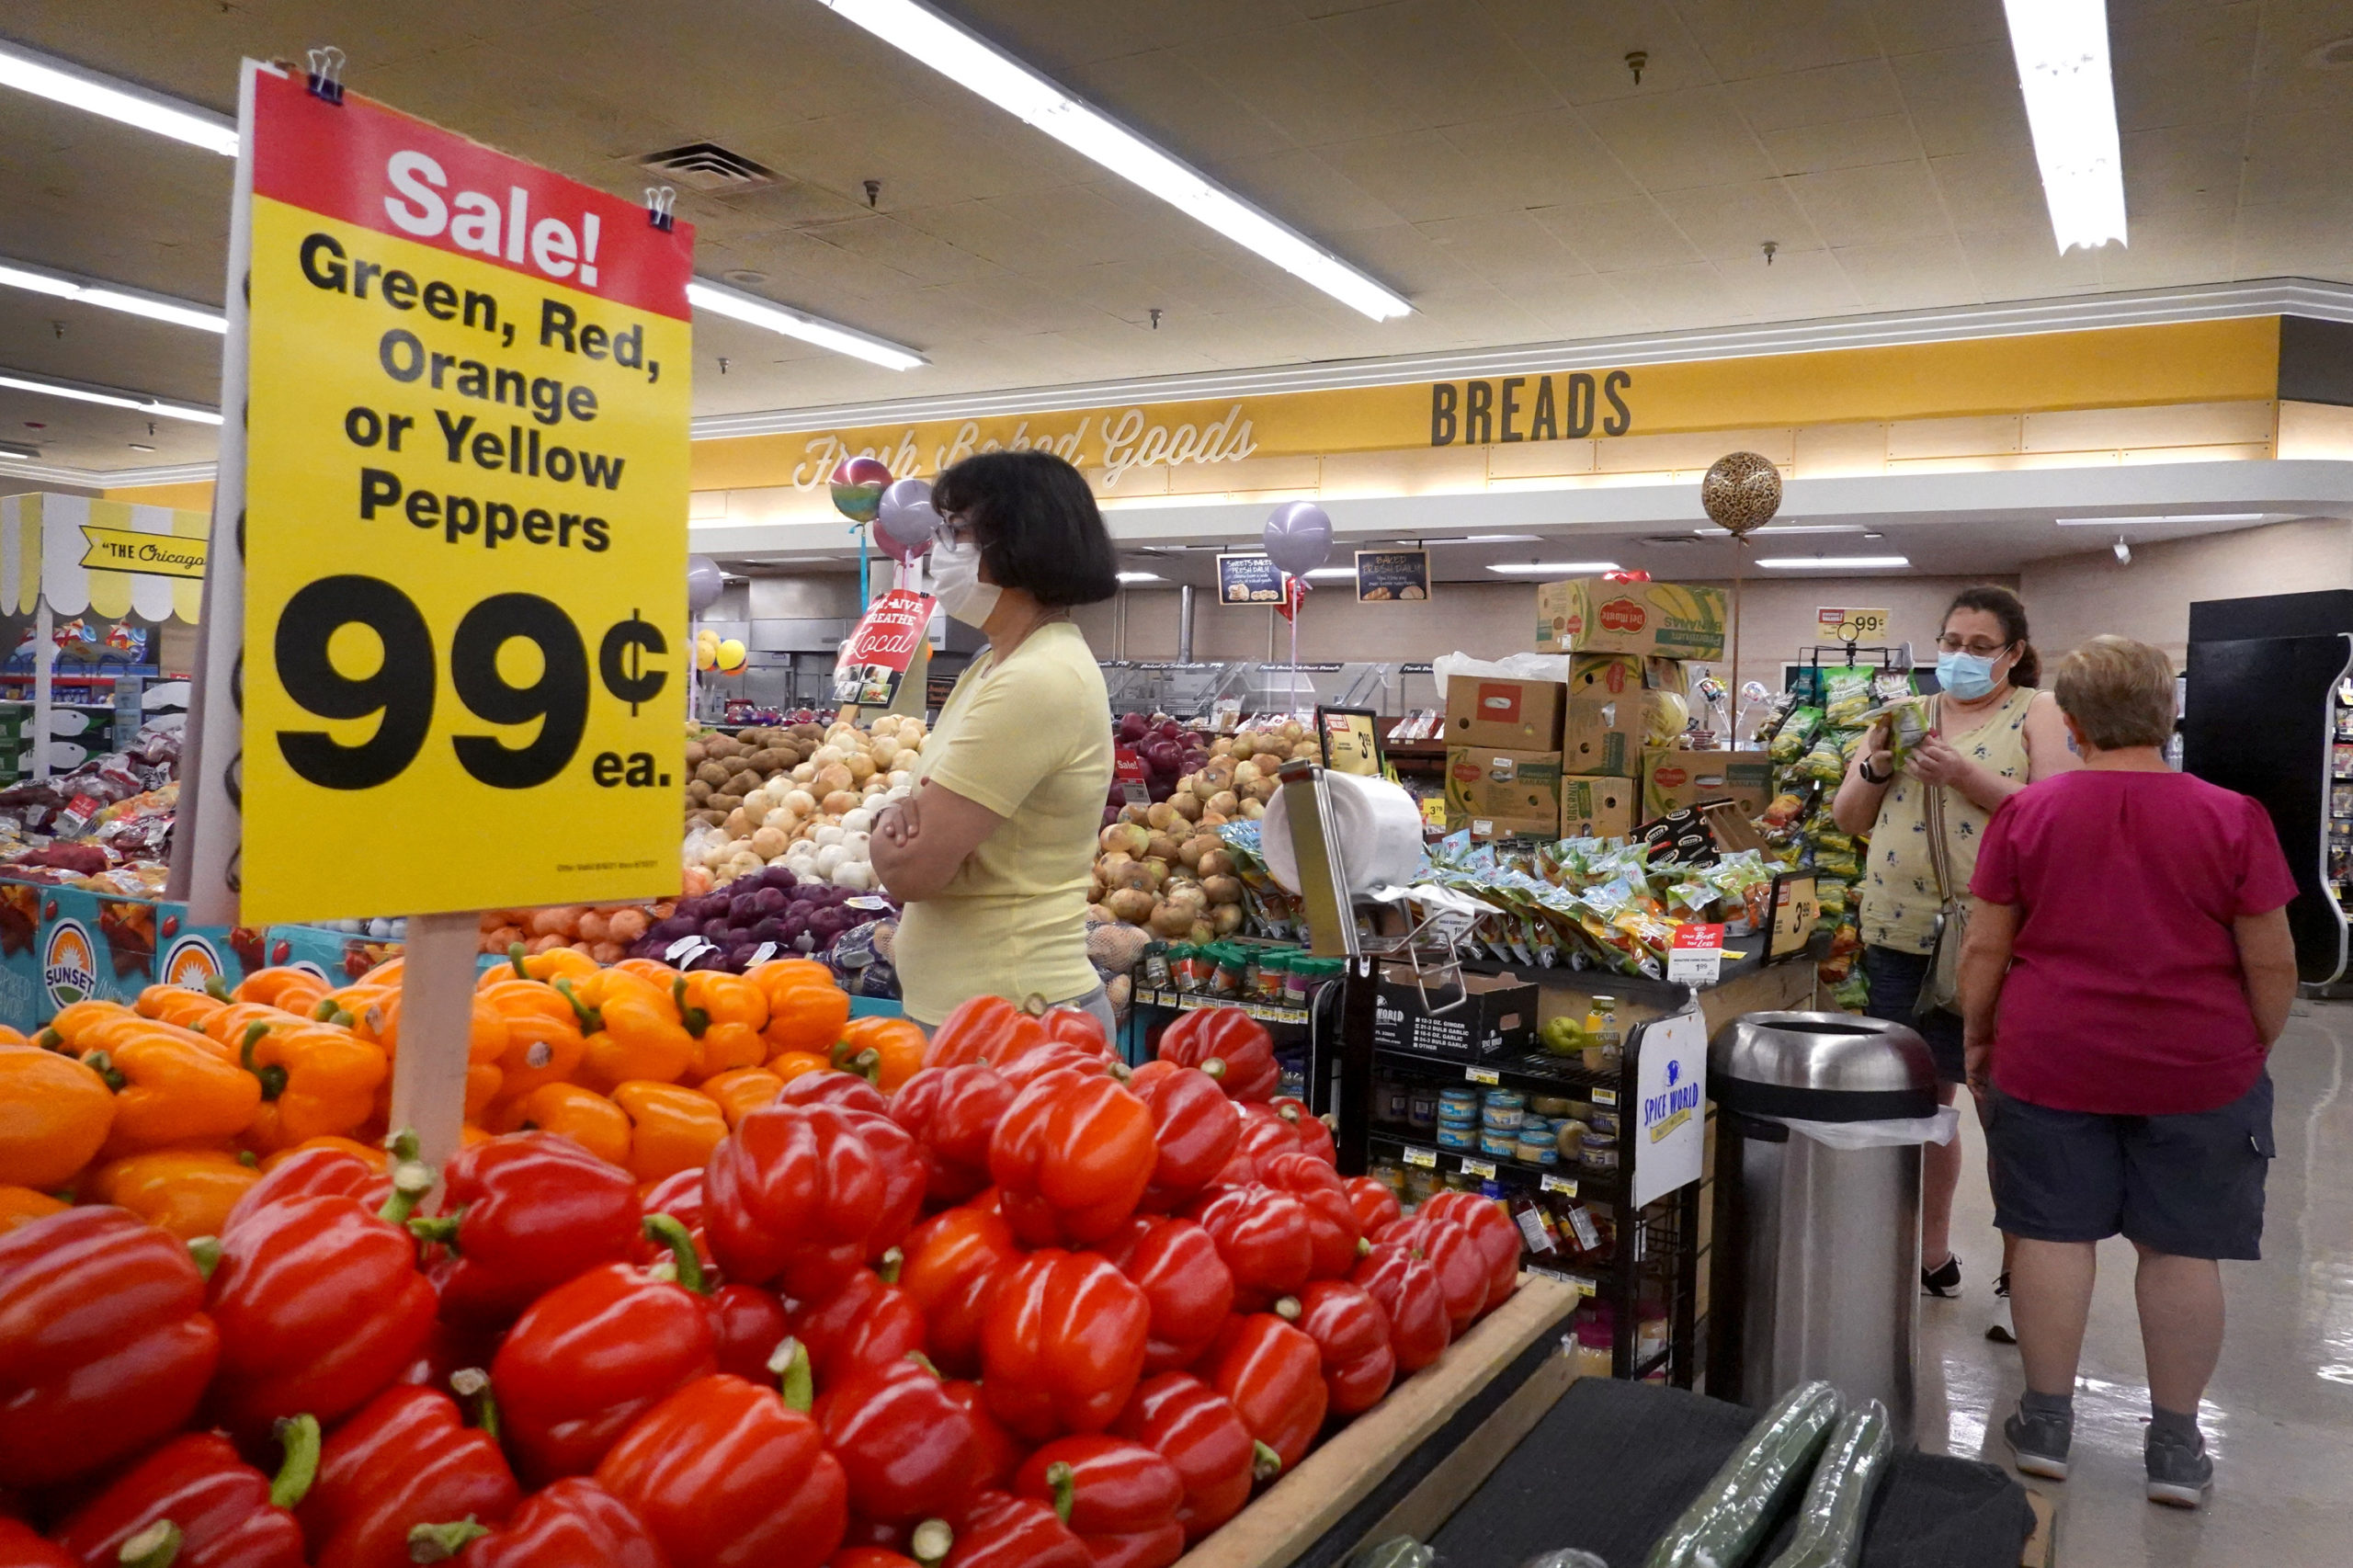 Customers shop for produce at a supermarket on June 10 in Chicago, Illinois. (Scott Olson/Getty Images)